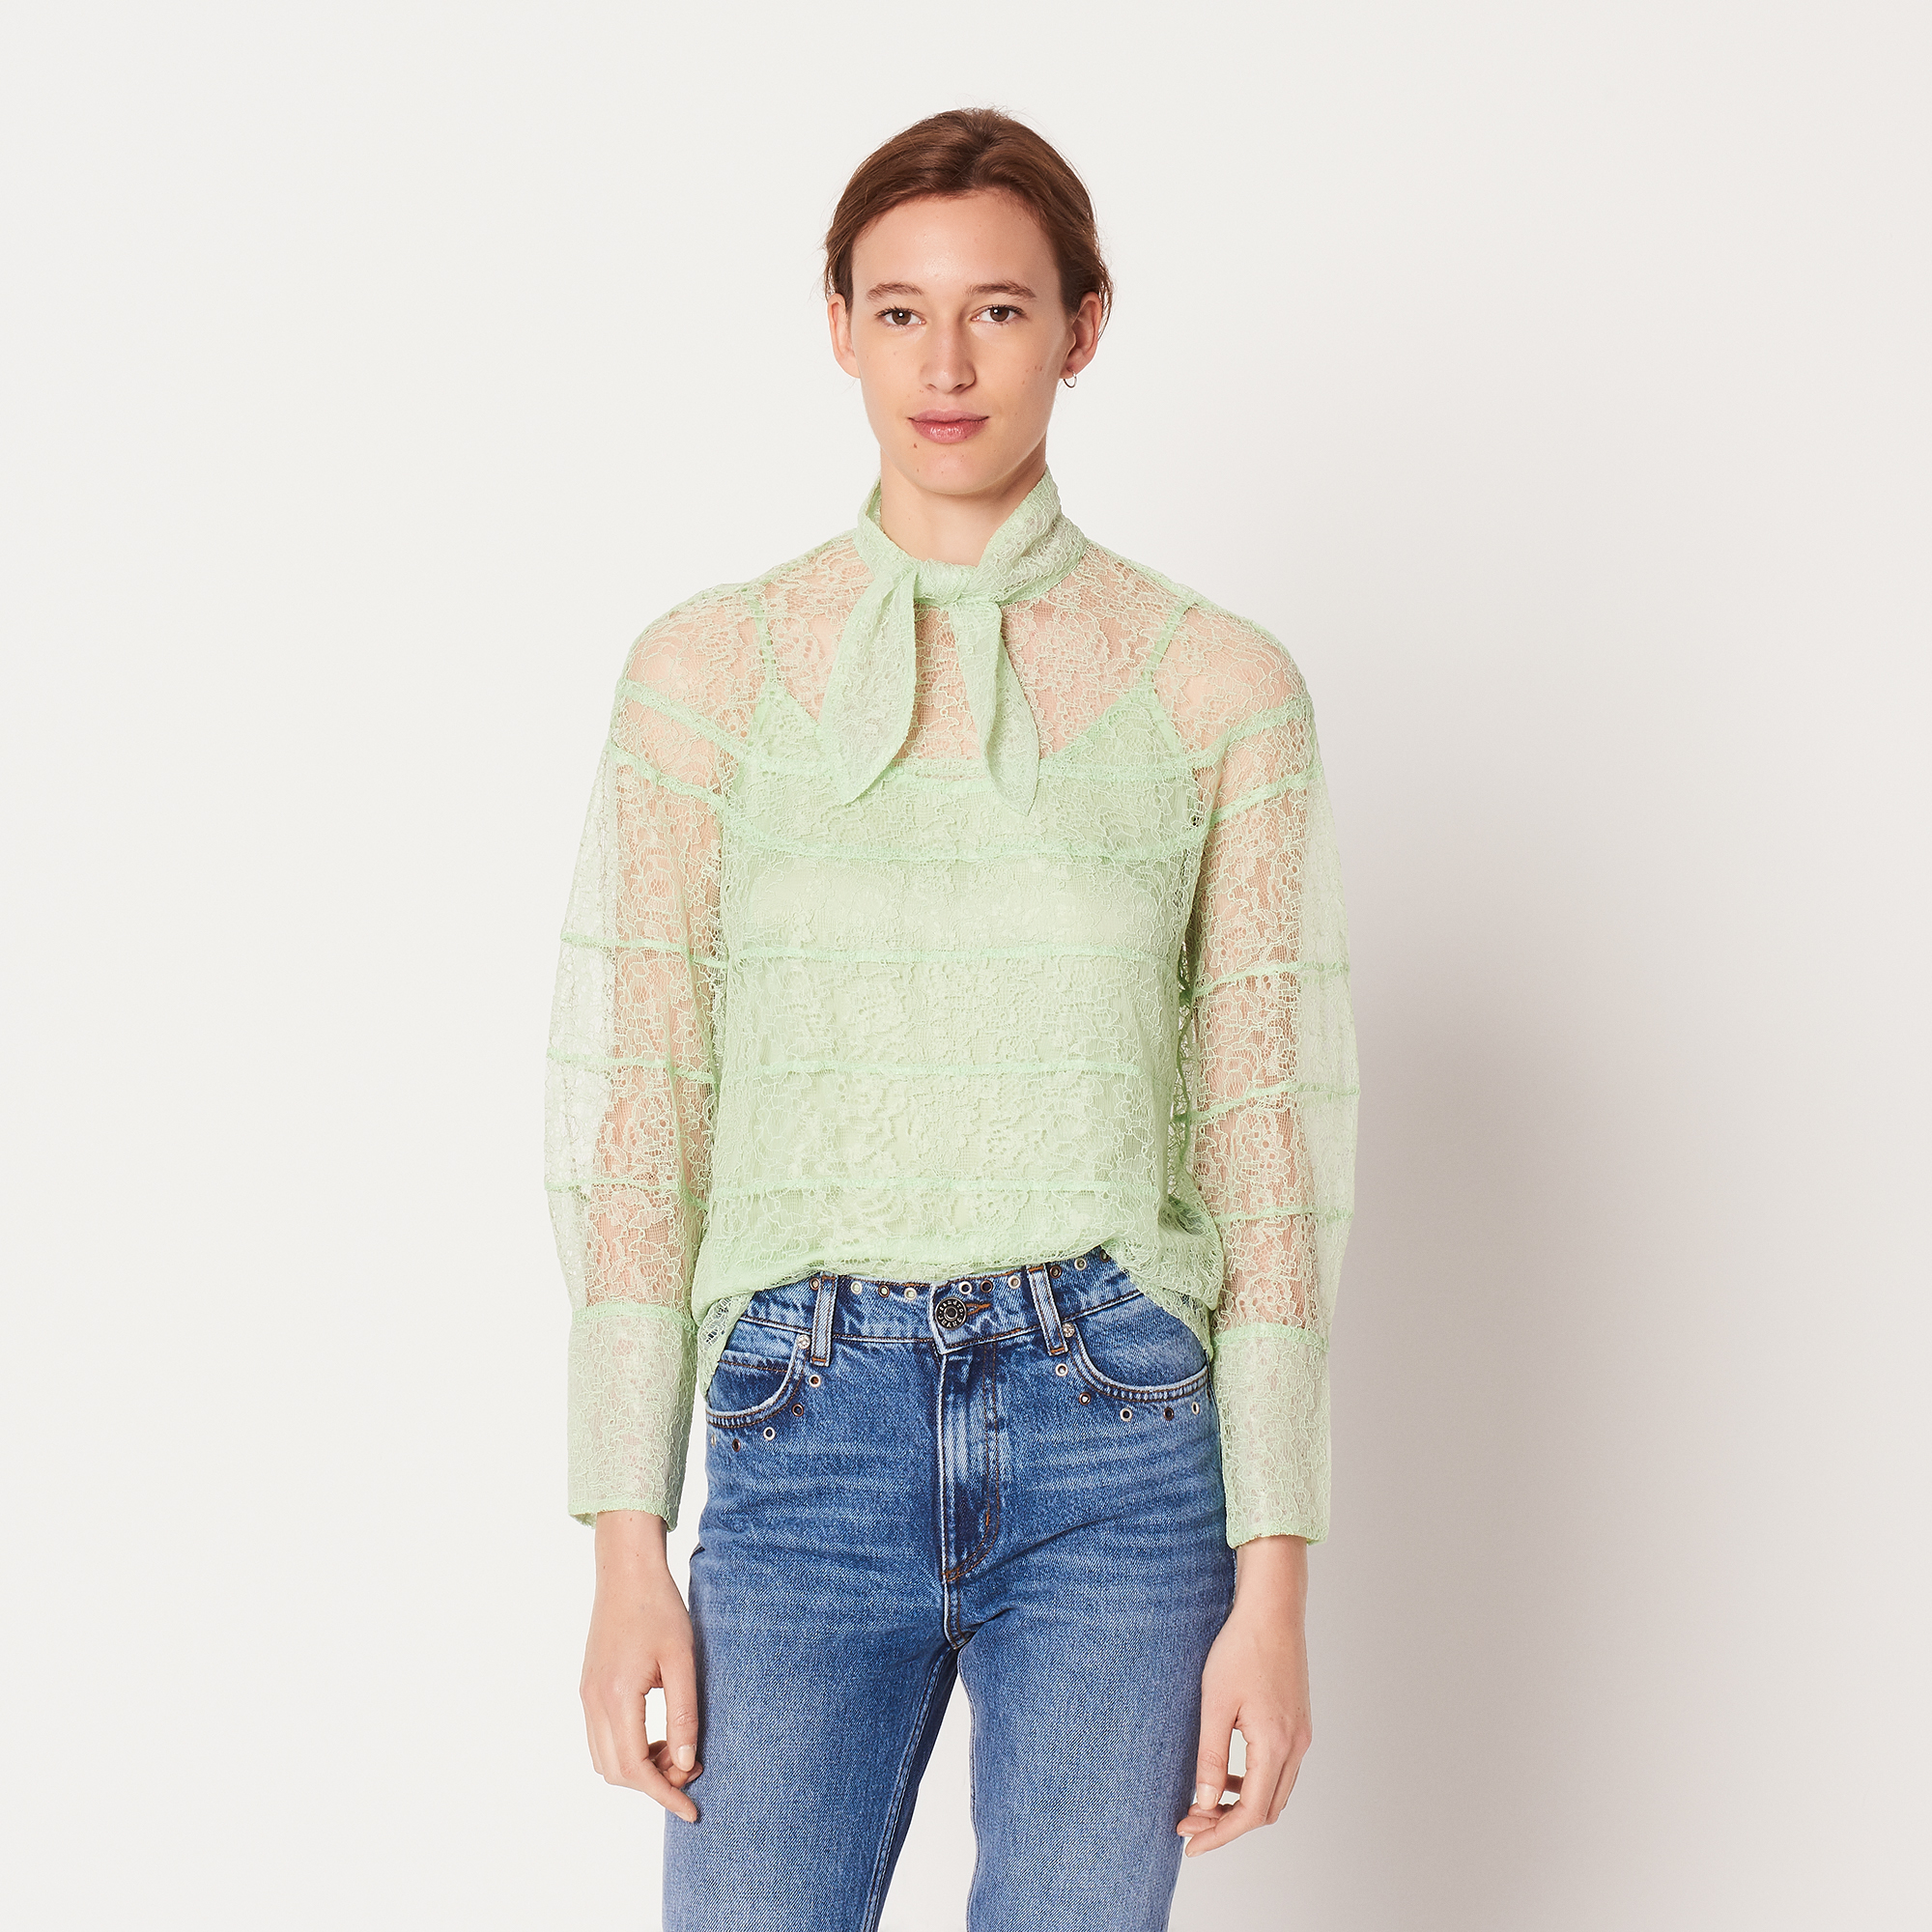 Long Sleeved Lace Top With Graphic Cut Outs - Almond Green